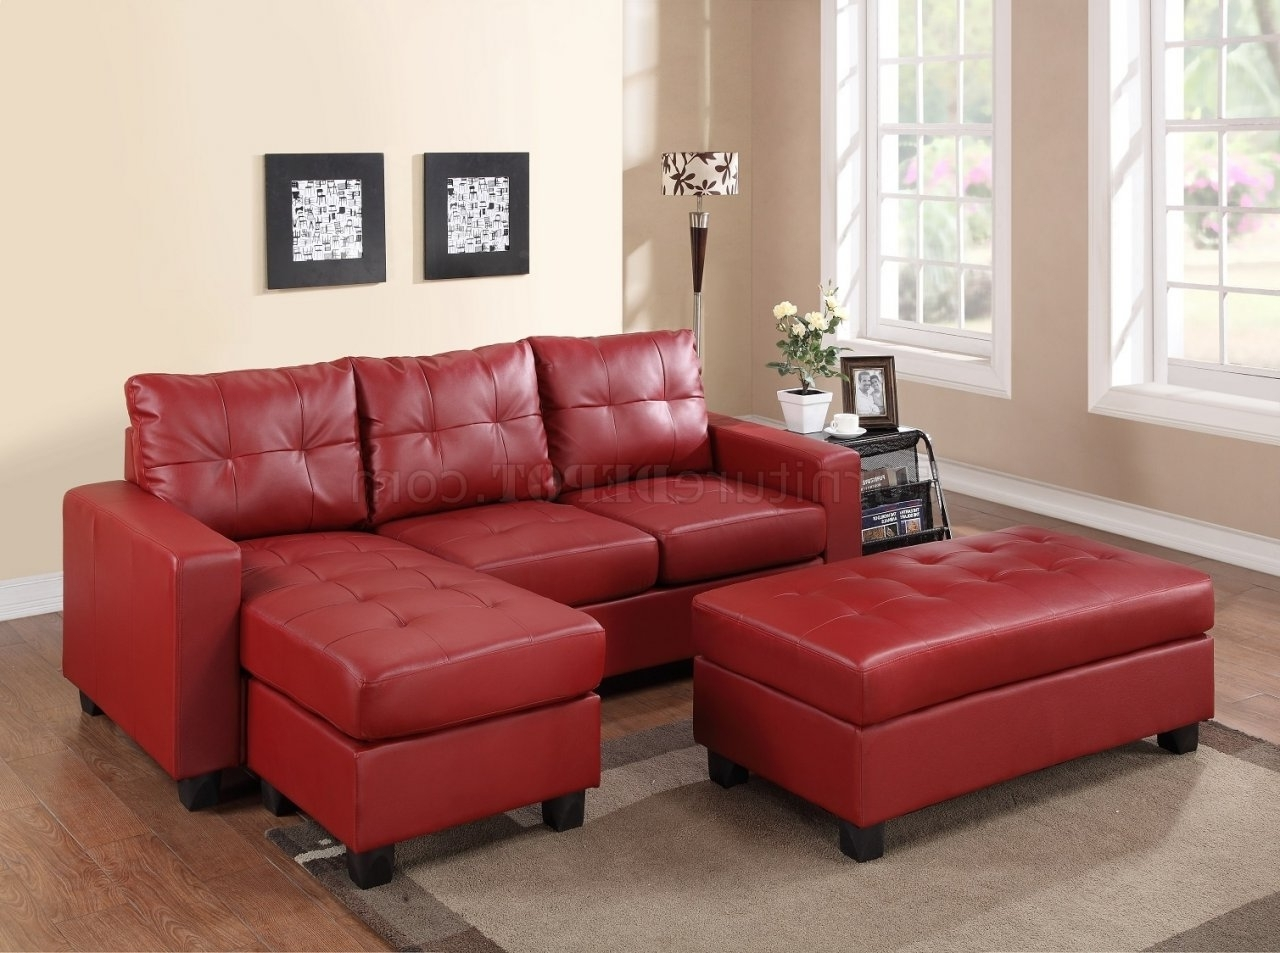 Red Leather Sectional Sofas With Ottoman Within Newest 2511 Sectional Sofa Set In Red Bonded Leather Match Pu (View 8 of 20)